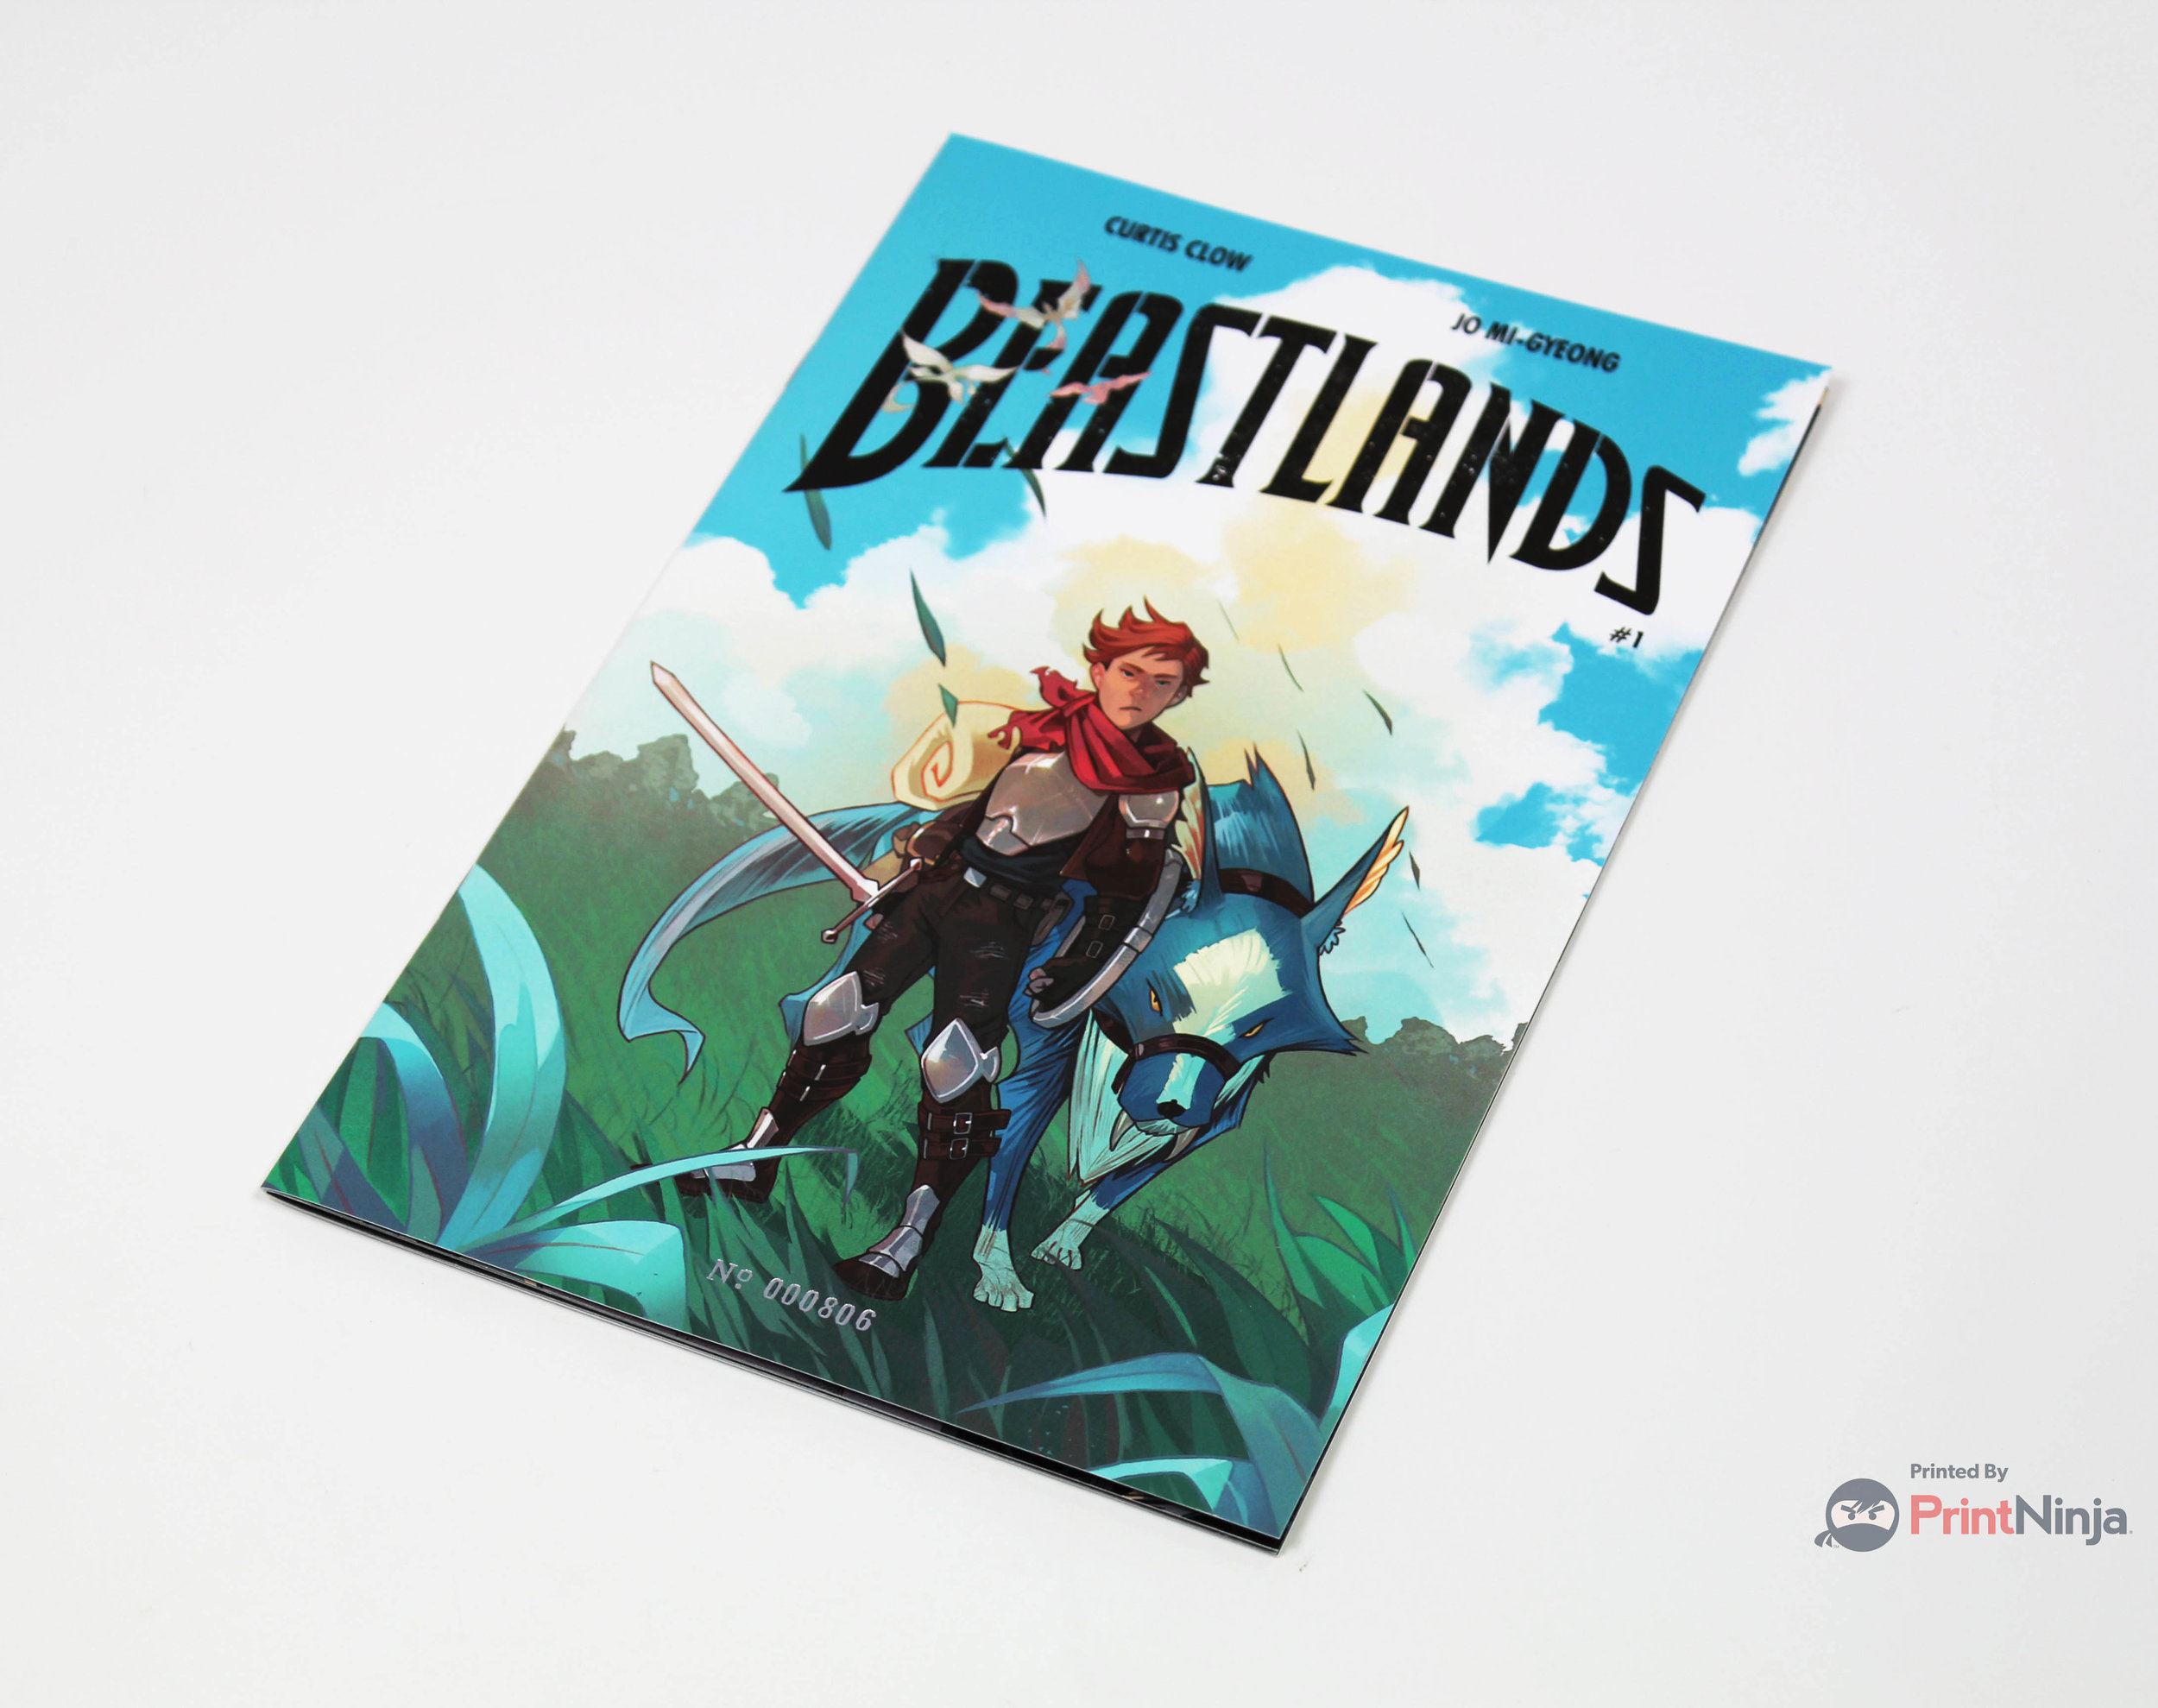 Collectors Beastlands #1 - 50 copies on sale!